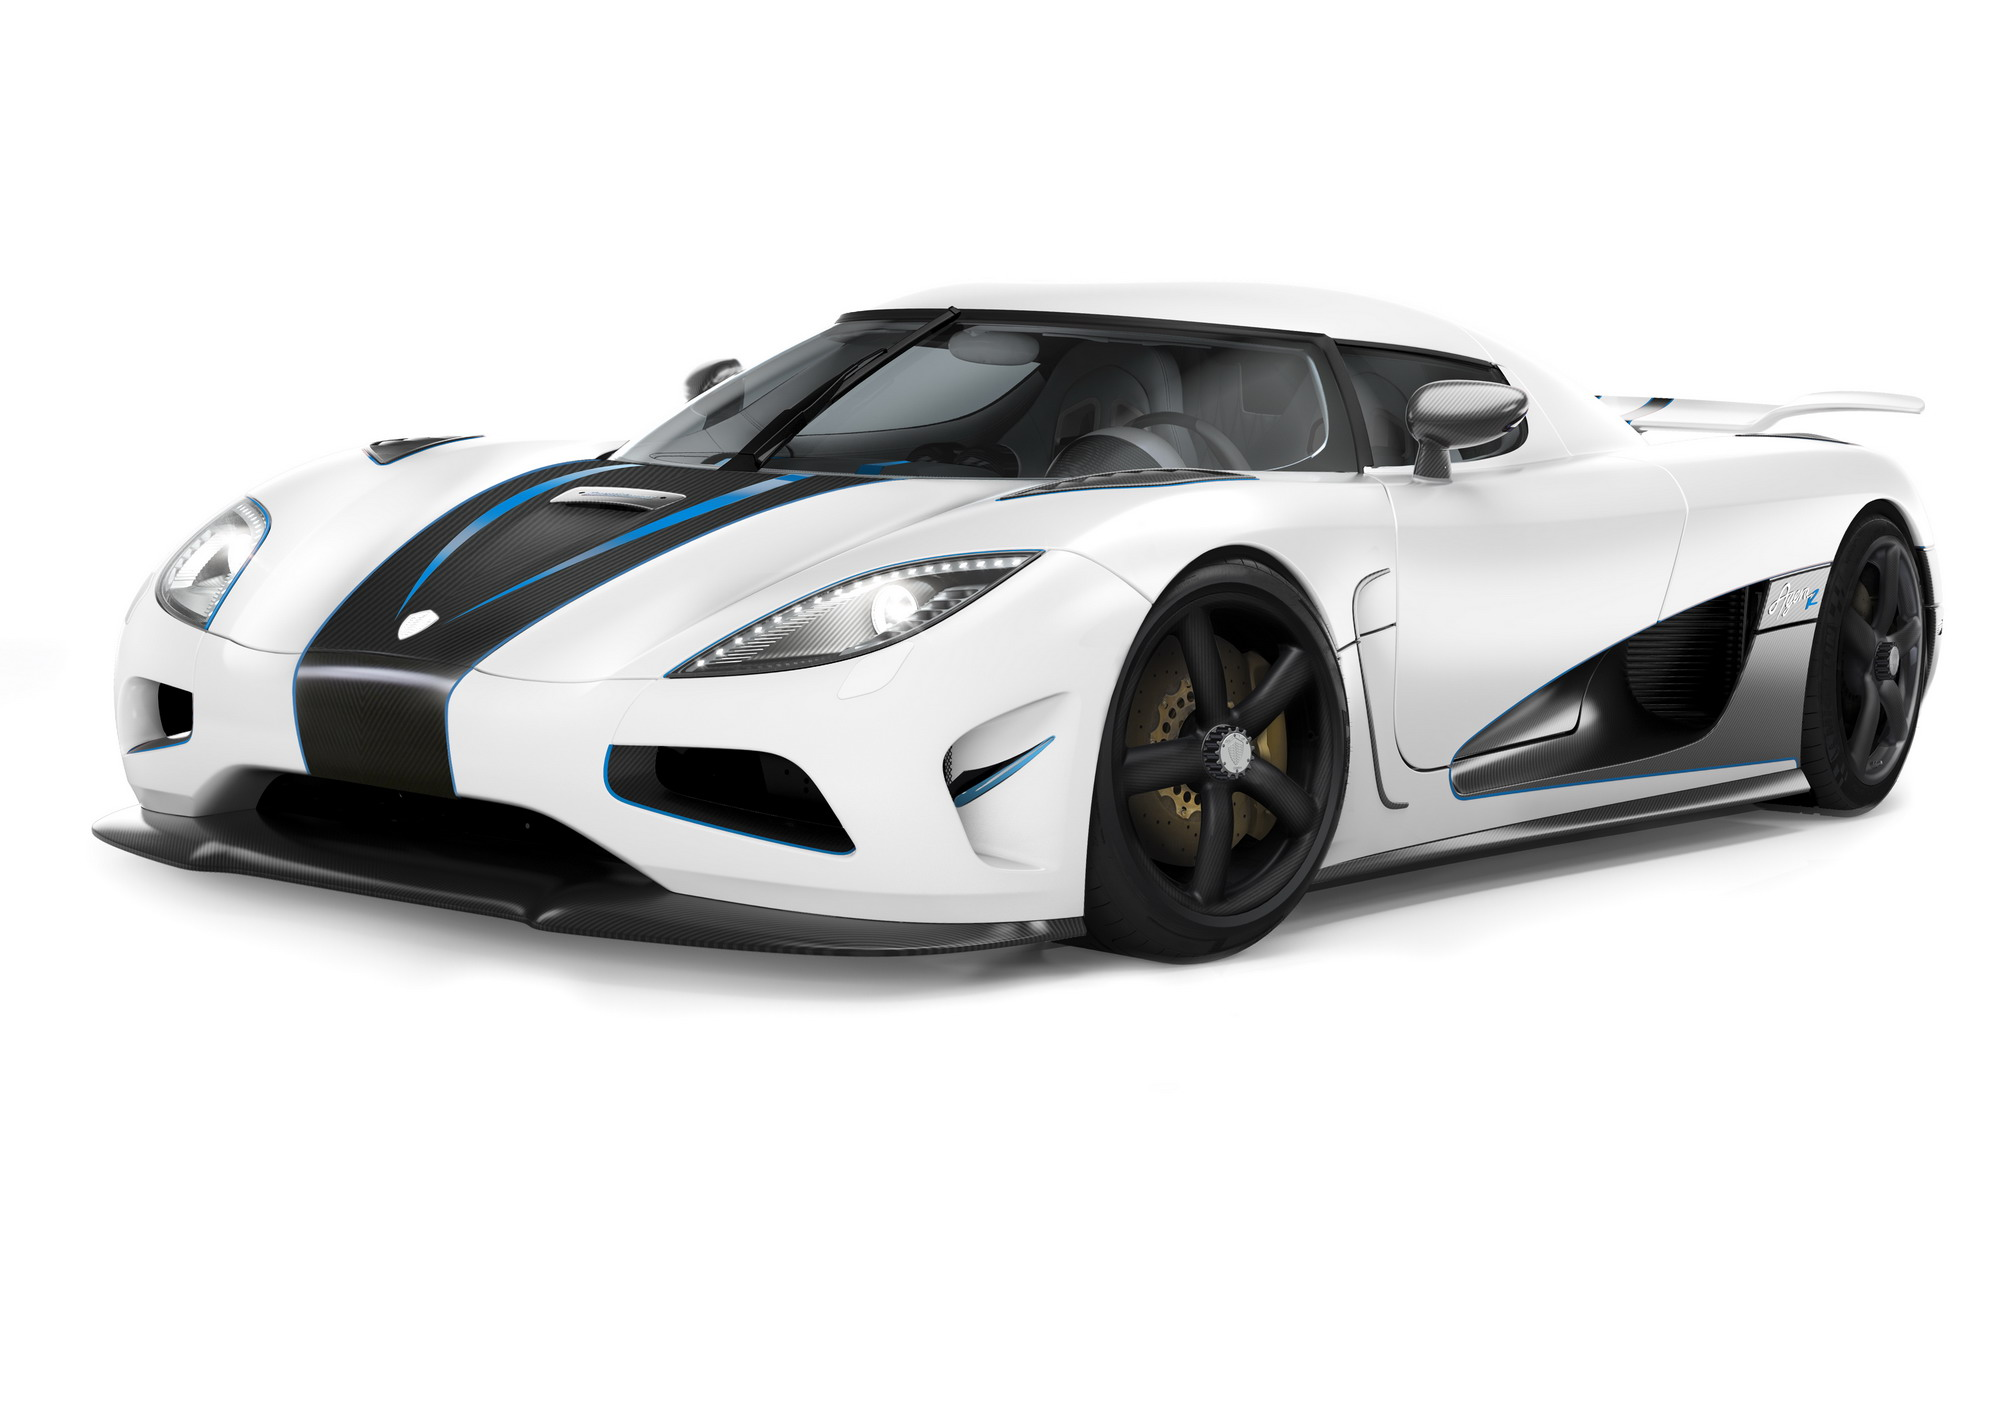 After Being Officially Unveiled Back In 2011, The Agera R Is Entering The  2013 Model Year As A More Powerful Sports Car ...